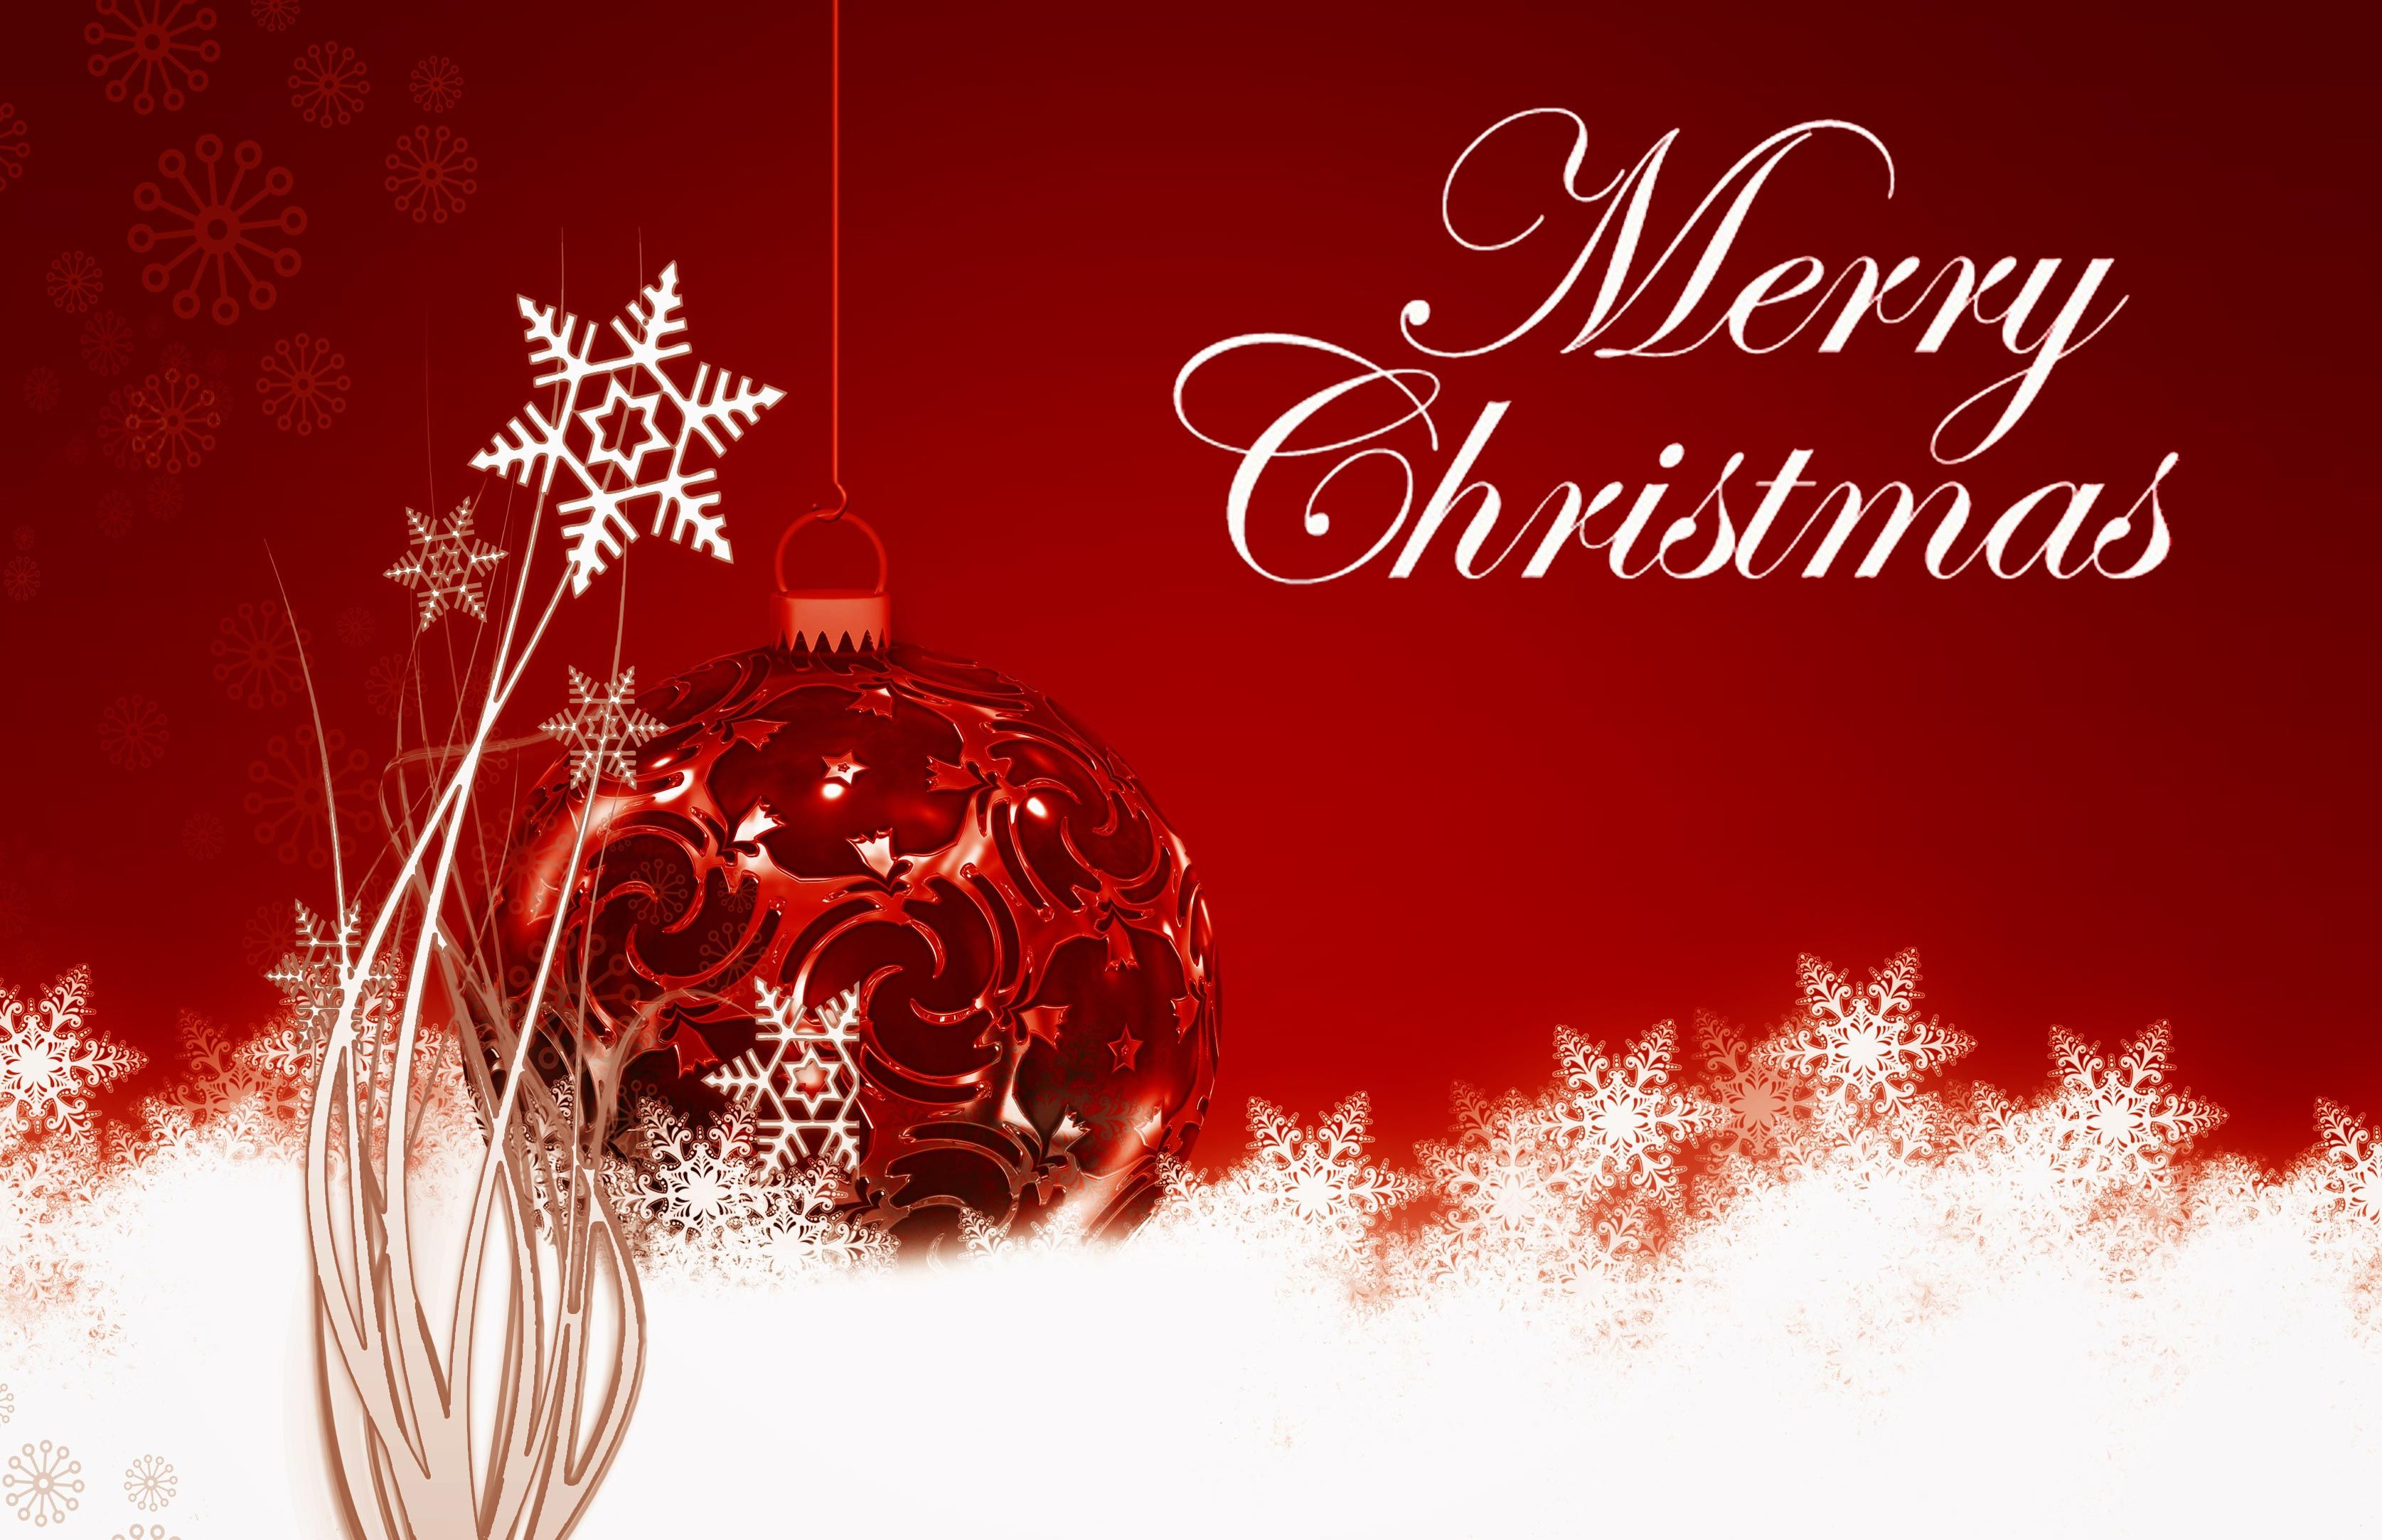 merry christmas ecard wallpaper Merry christmas message